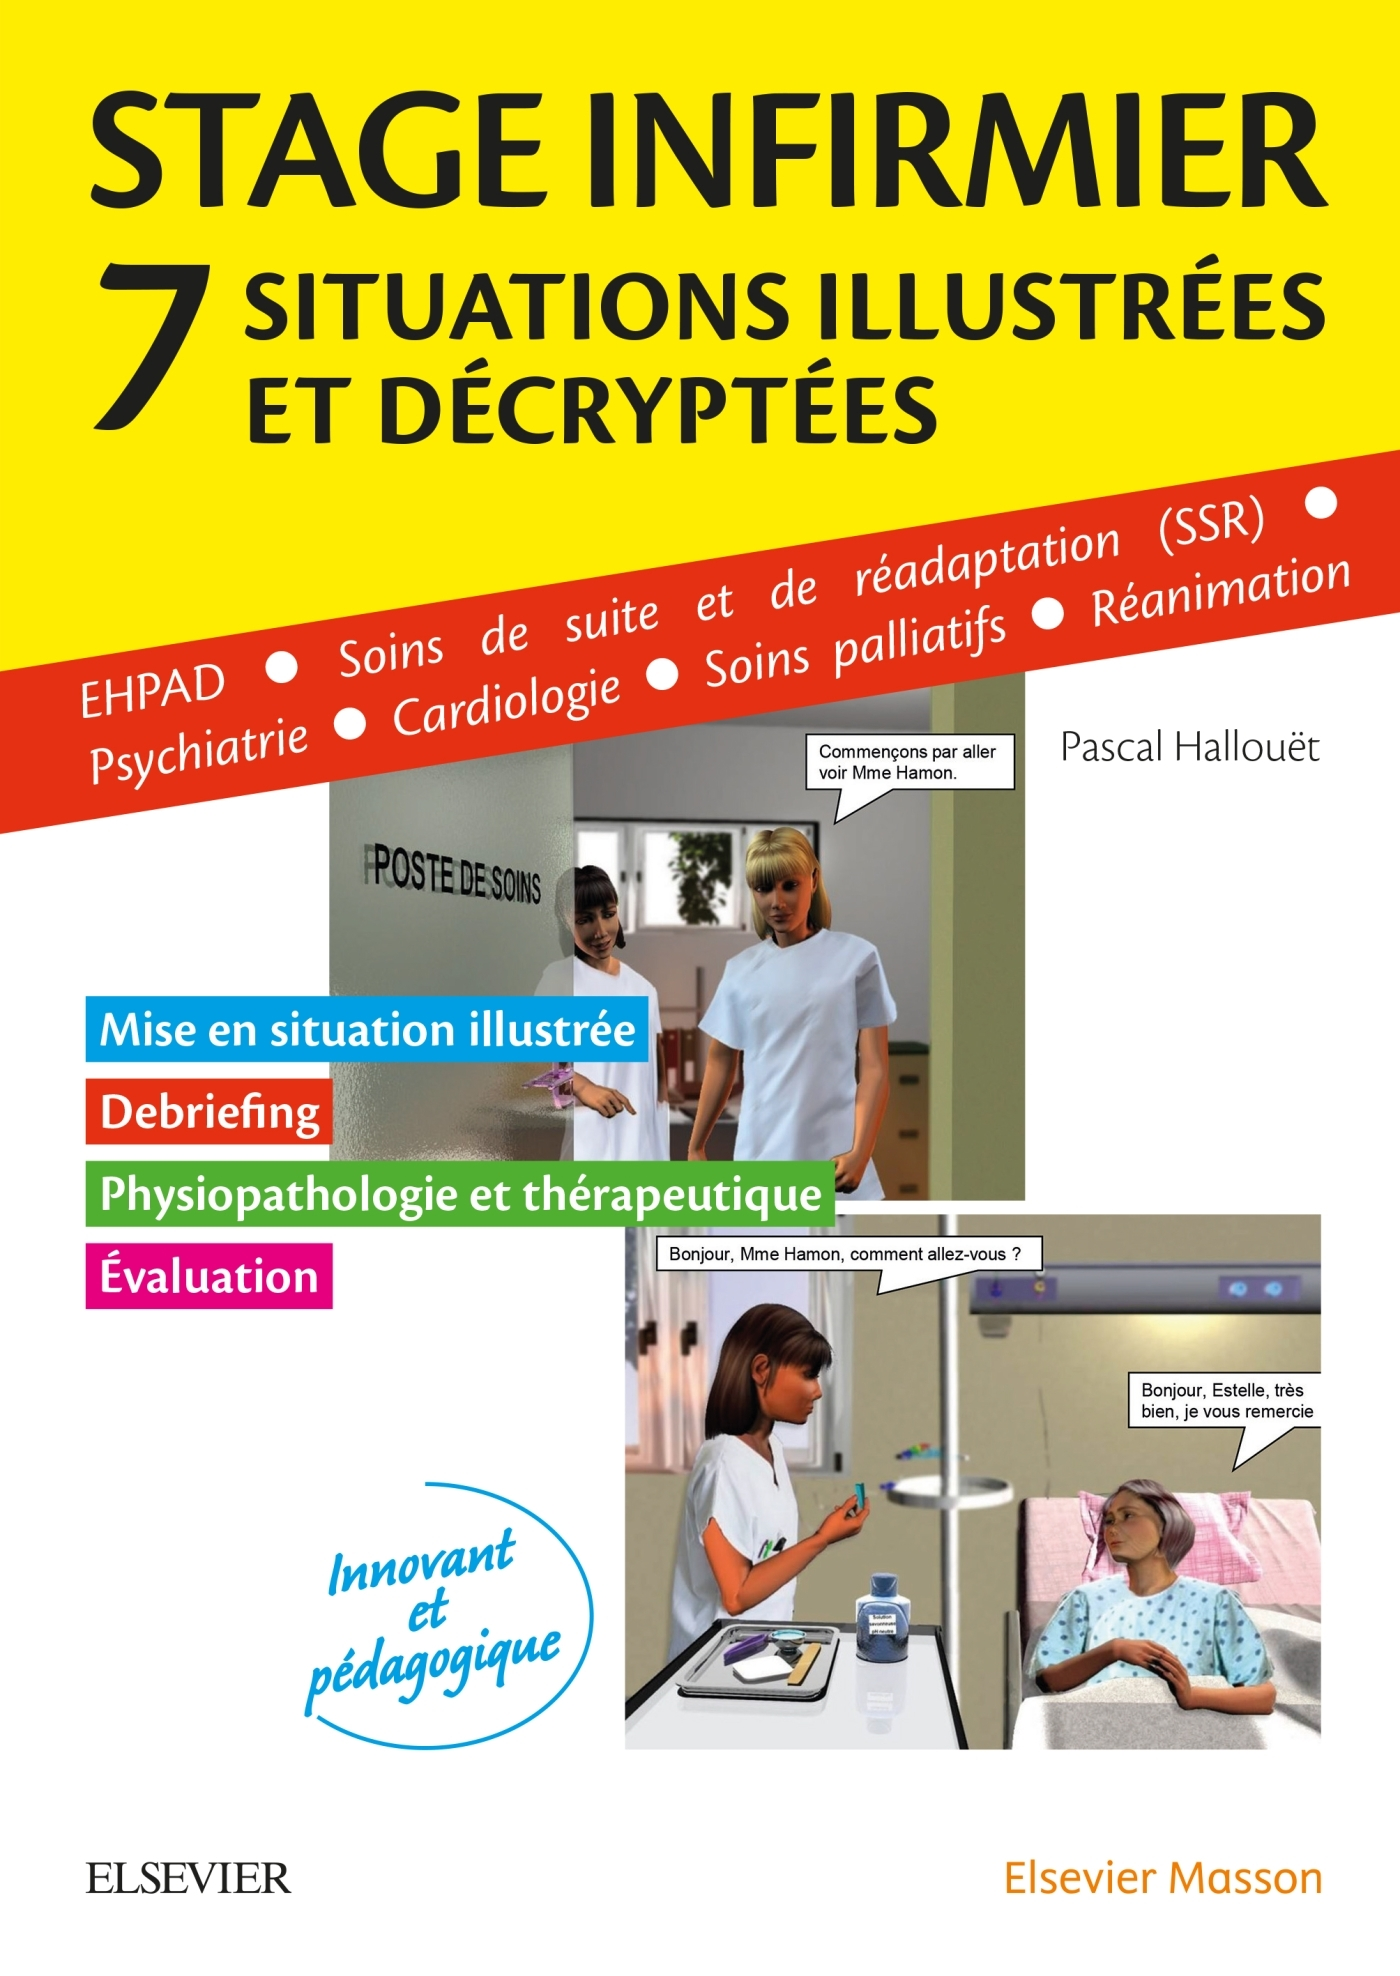 STAGE INFIRMIER :SITUATIONS ILLUSTREES ET DECRYPTEES - EHPAD - SSR - PSYCHIATRIE - CARDIOLOGIE - SOI